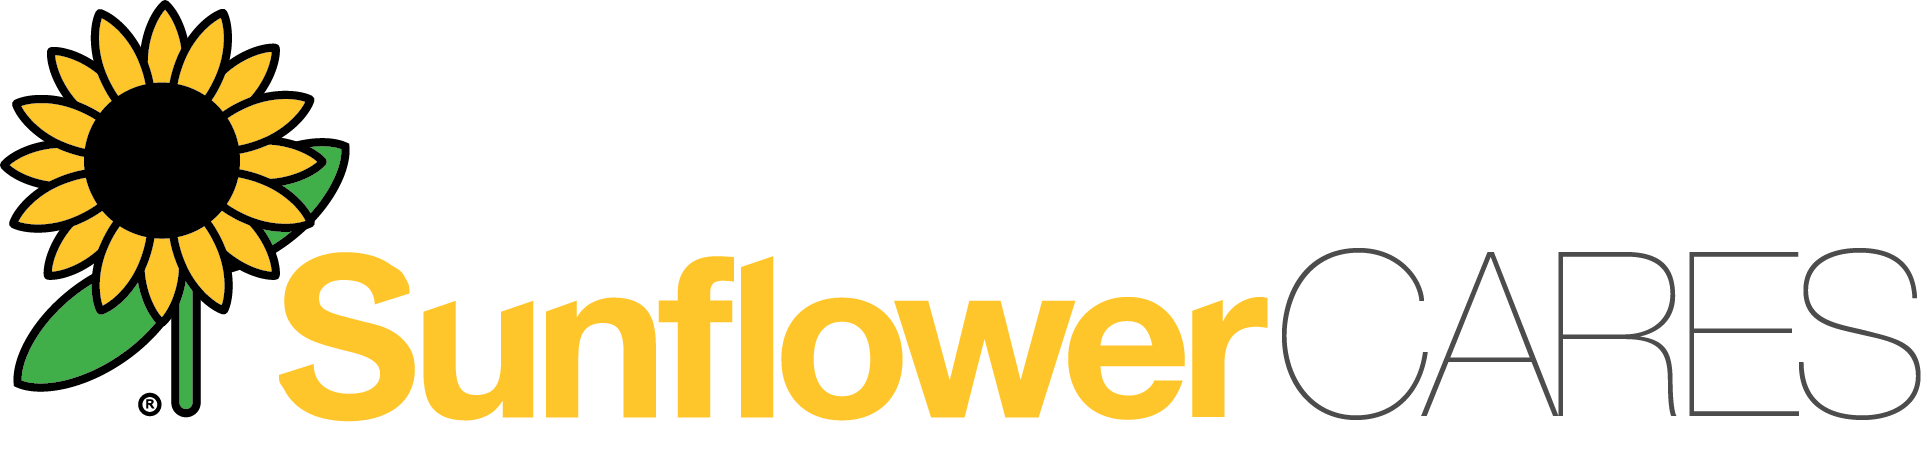 sunflower cares